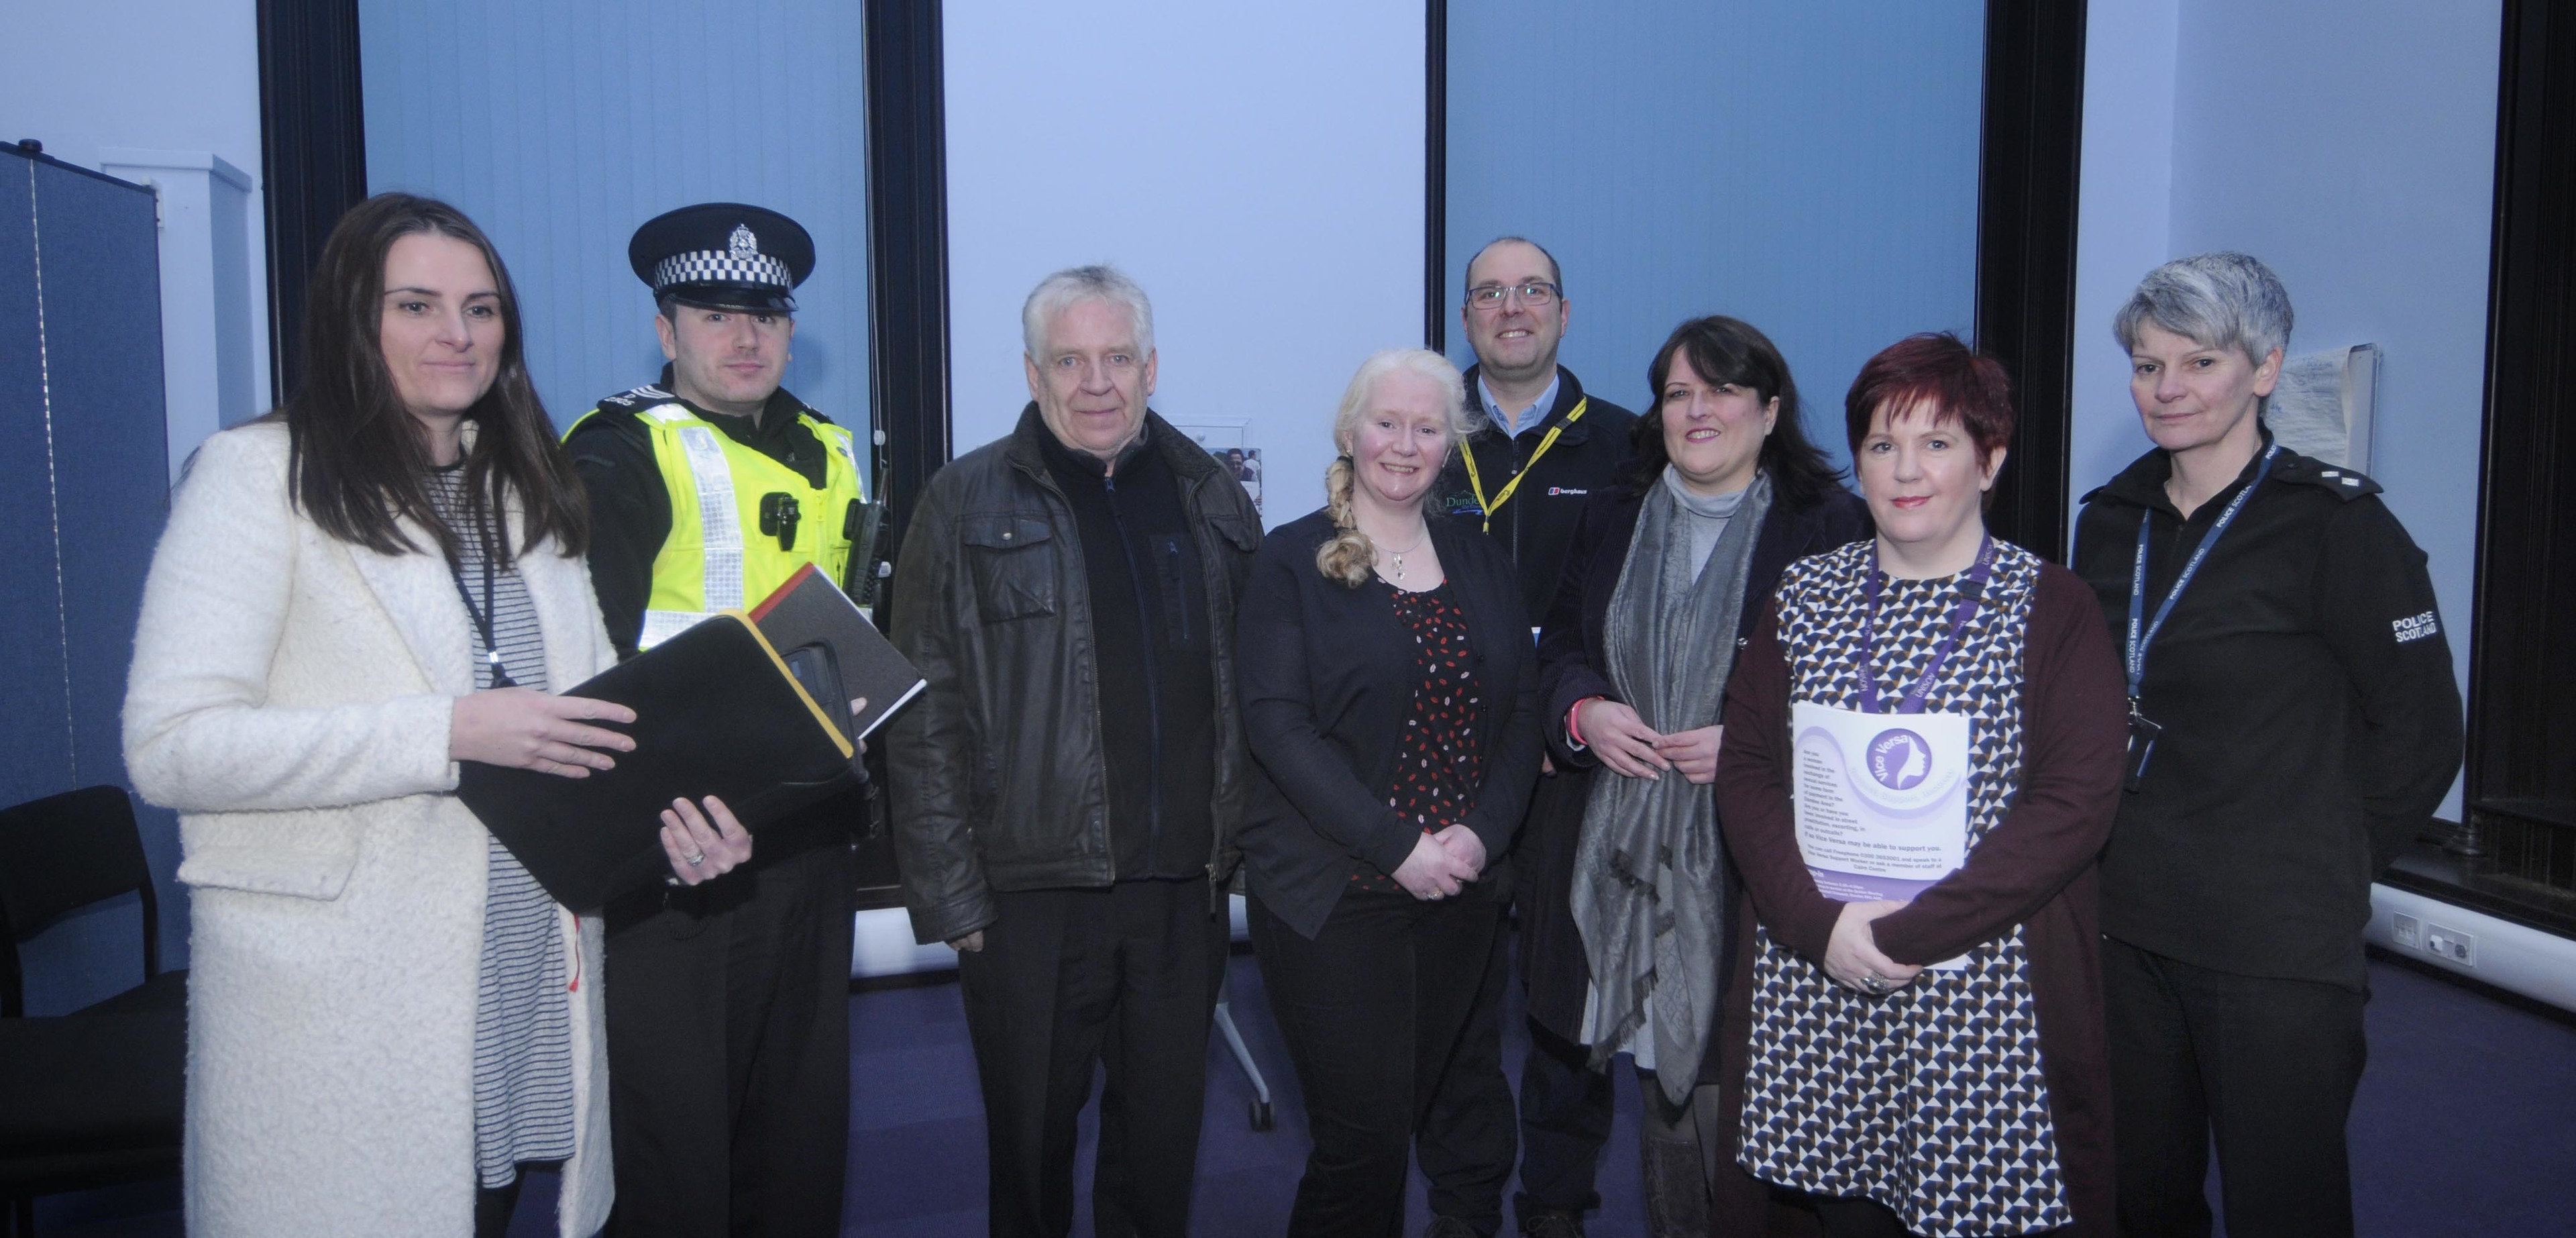 A cross-sector meeting was held to address the concerns expressed by Arbroath Road homeowners.